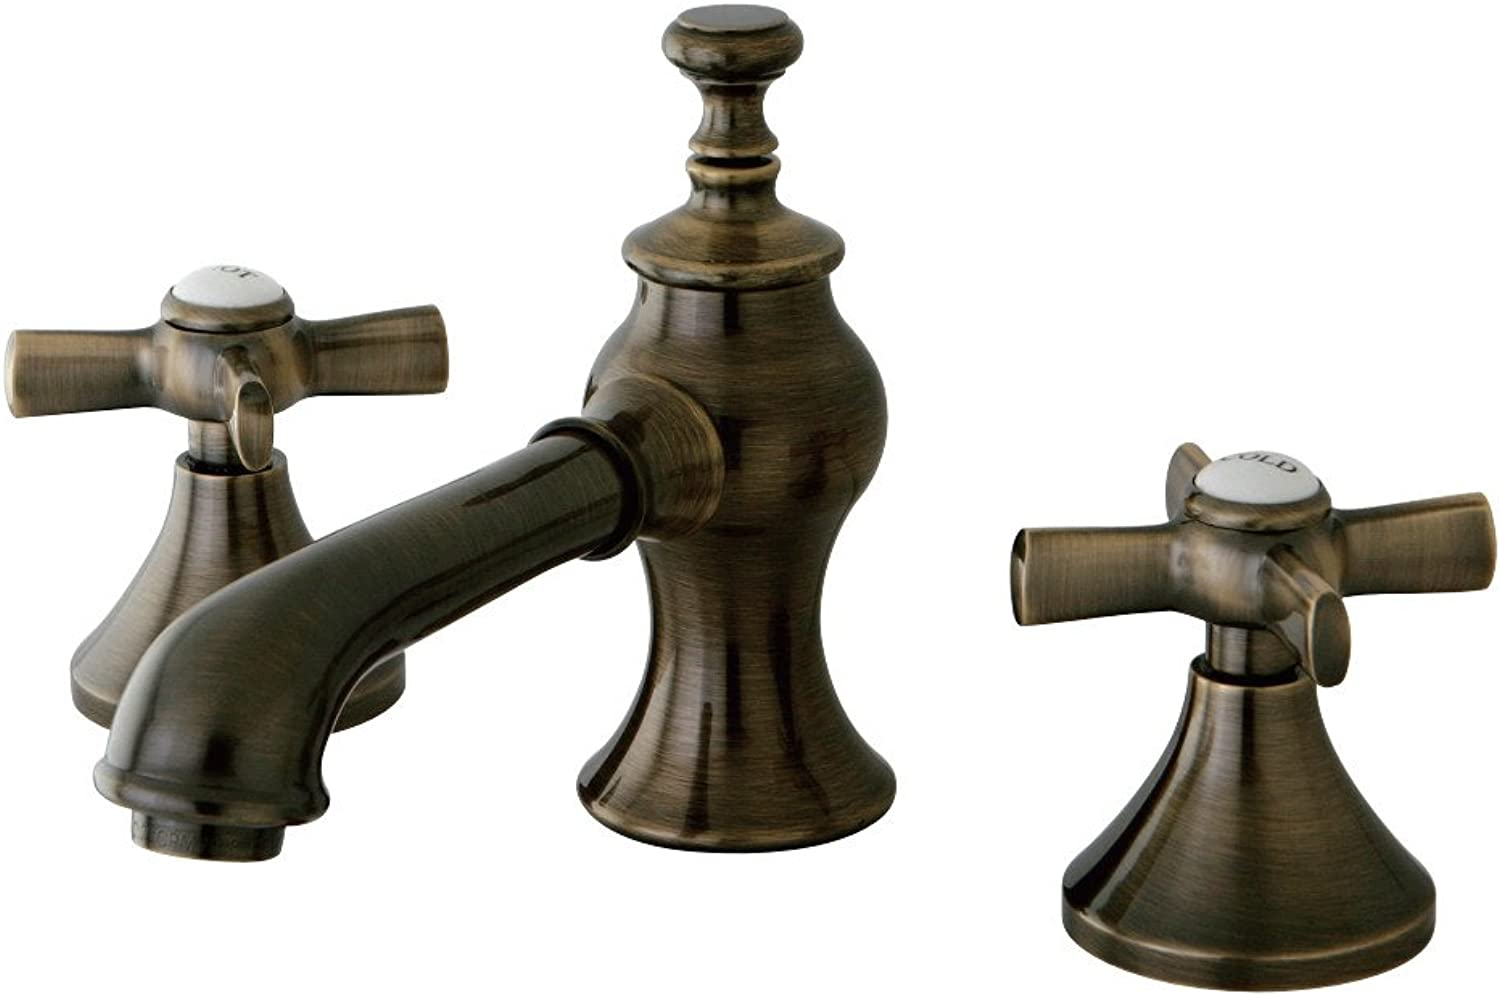 Kingston Brass KS706.ZX English Country Widespread Bathroom Faucet with Metal Cr, Vintage Brass